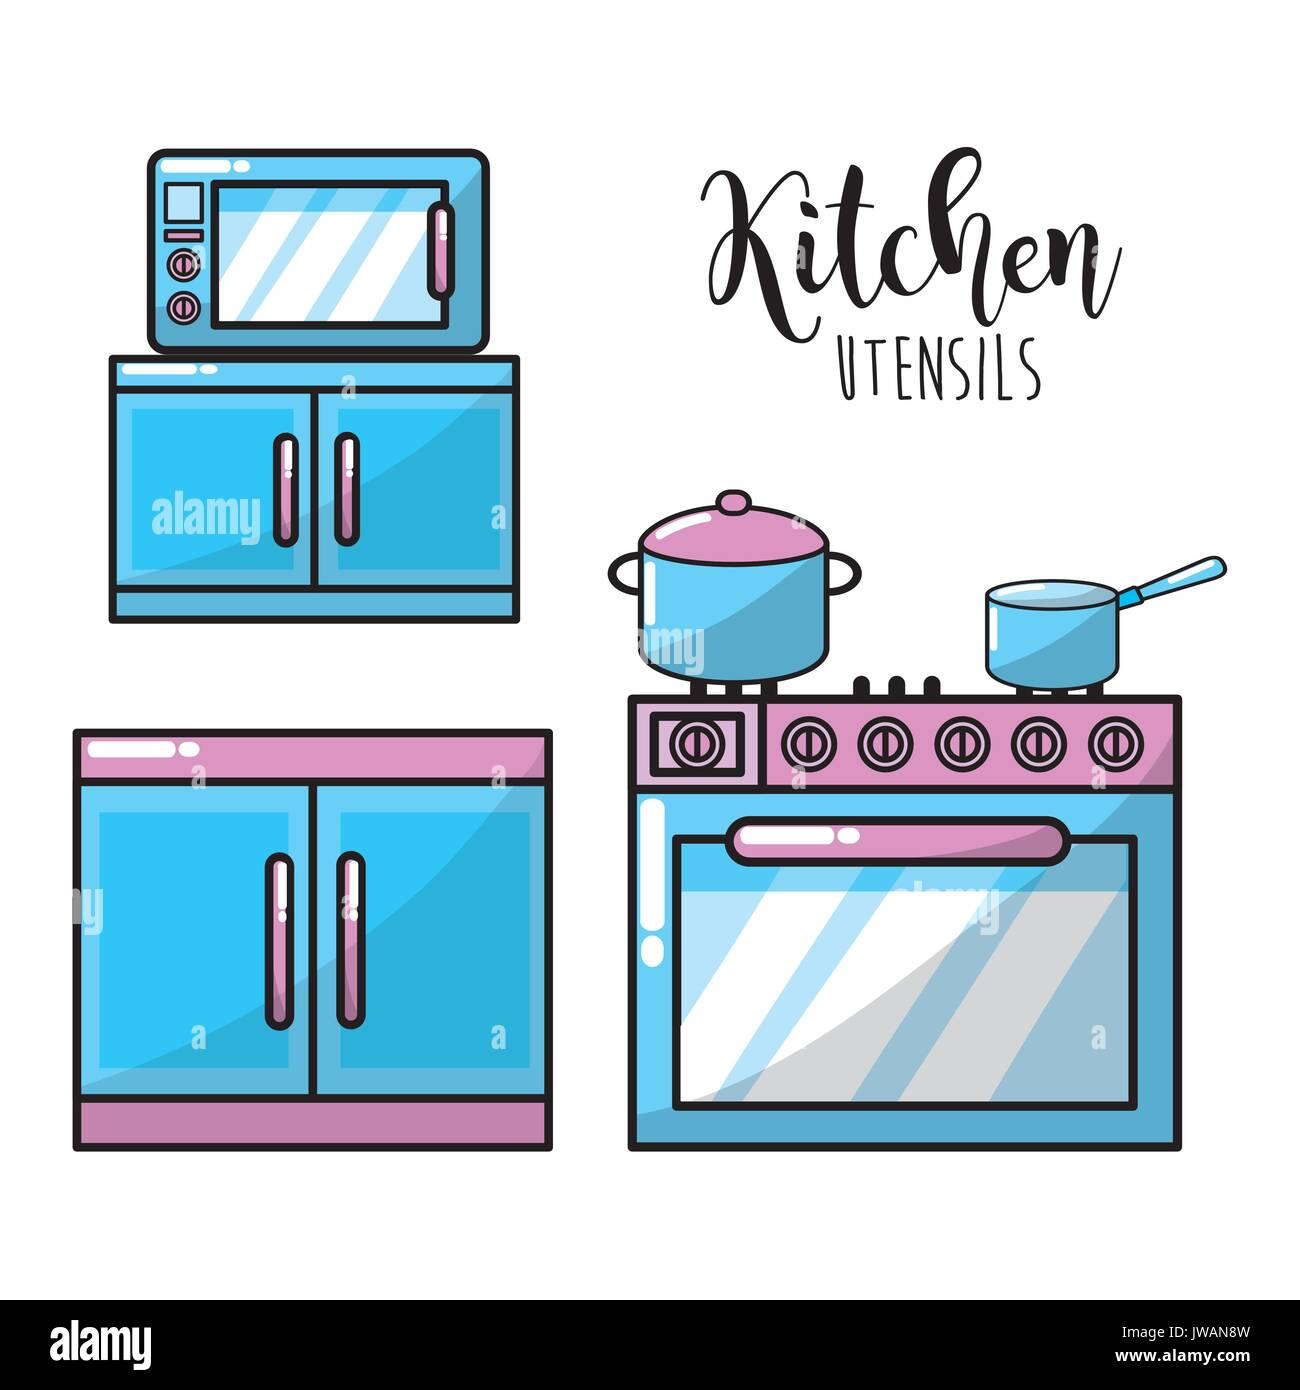 kitchen utensils traditional object element Stock Vector Art ...